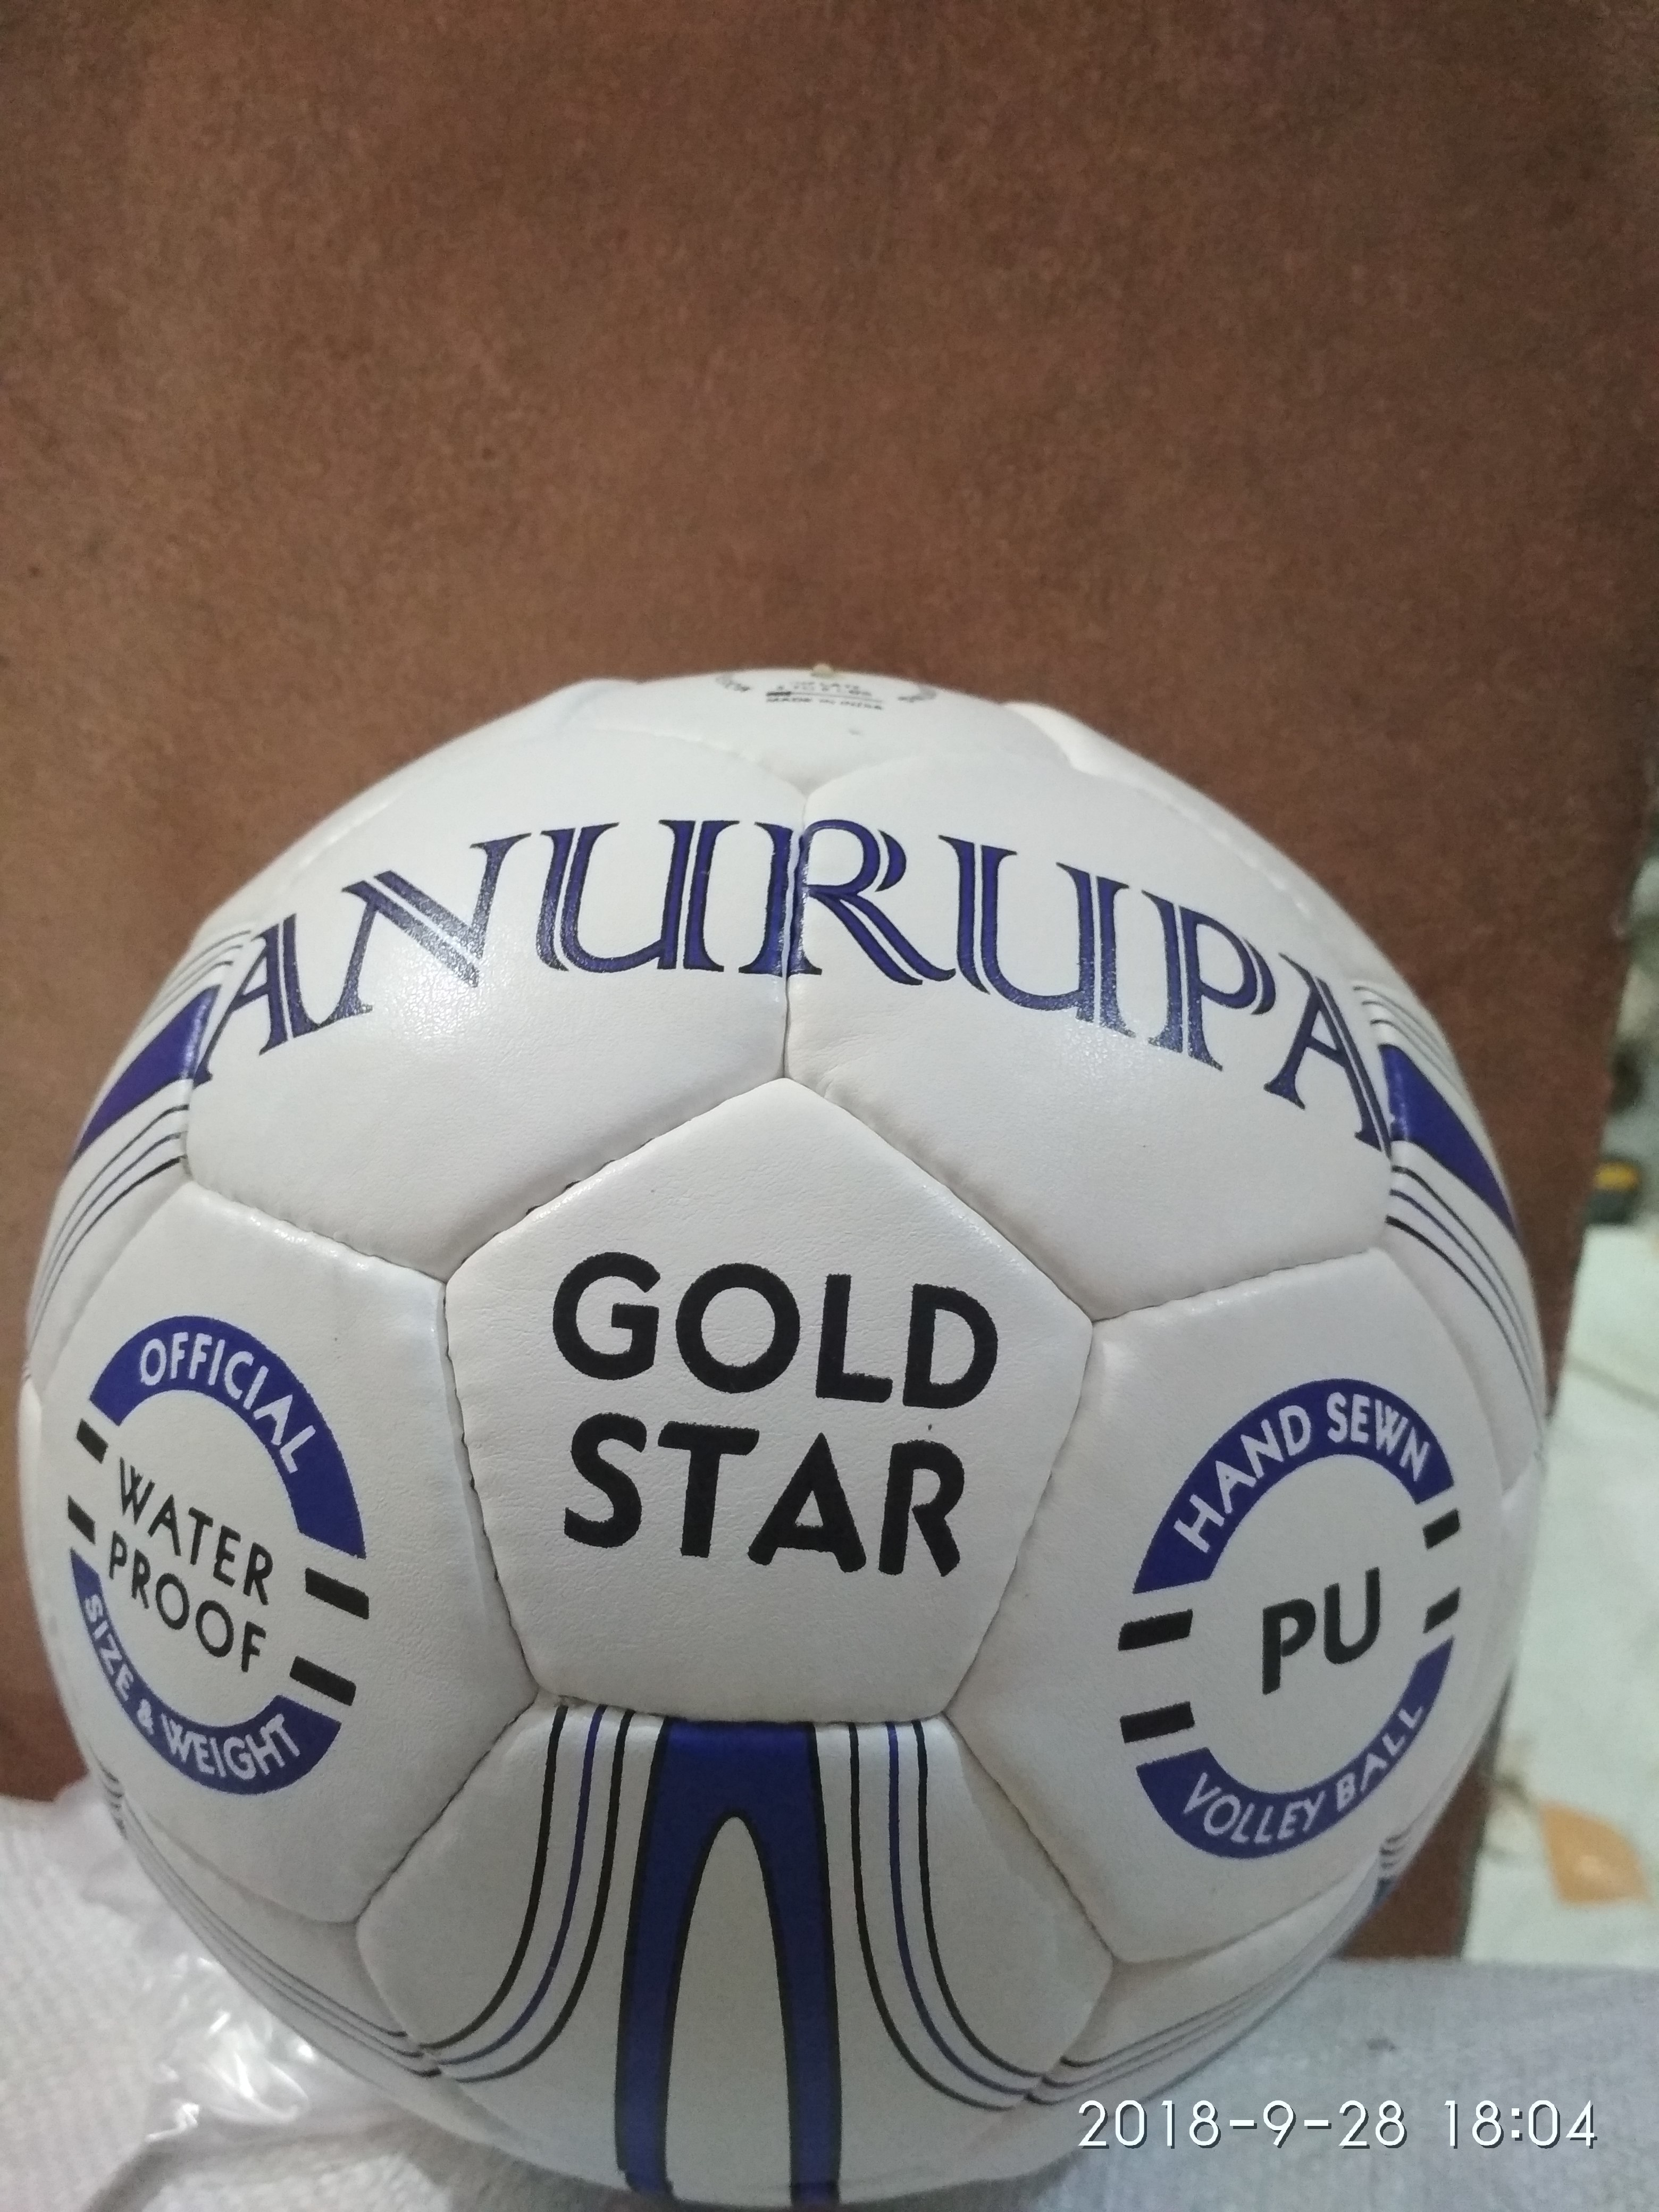 PU Volley Ball Gold Star